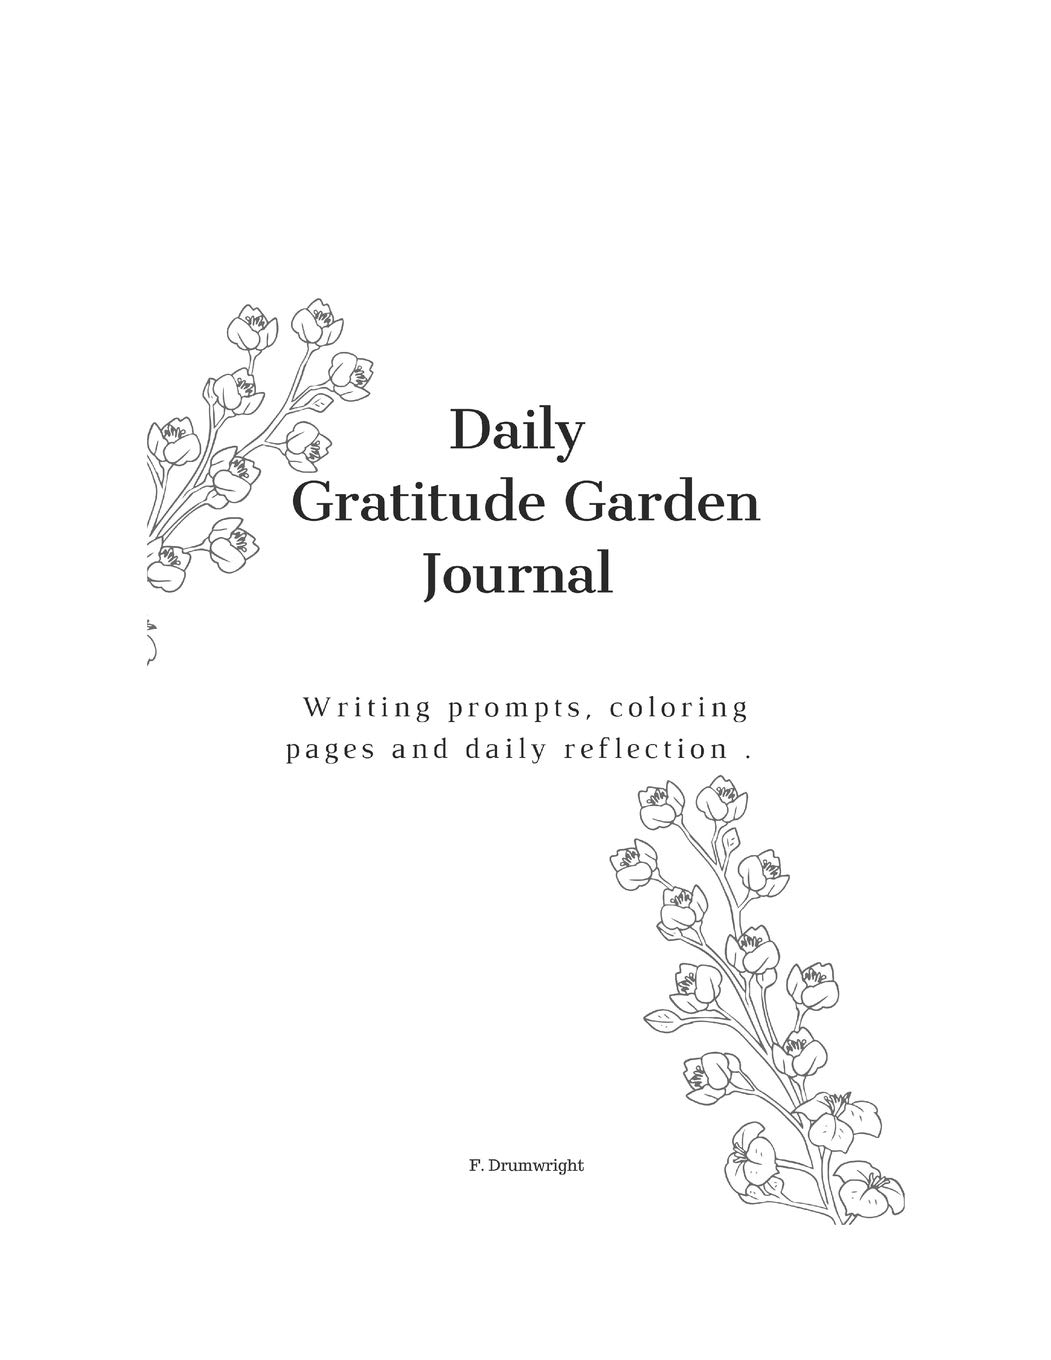 Daily Gratitude Garden Daily Journal With Writing Prompts Coloring